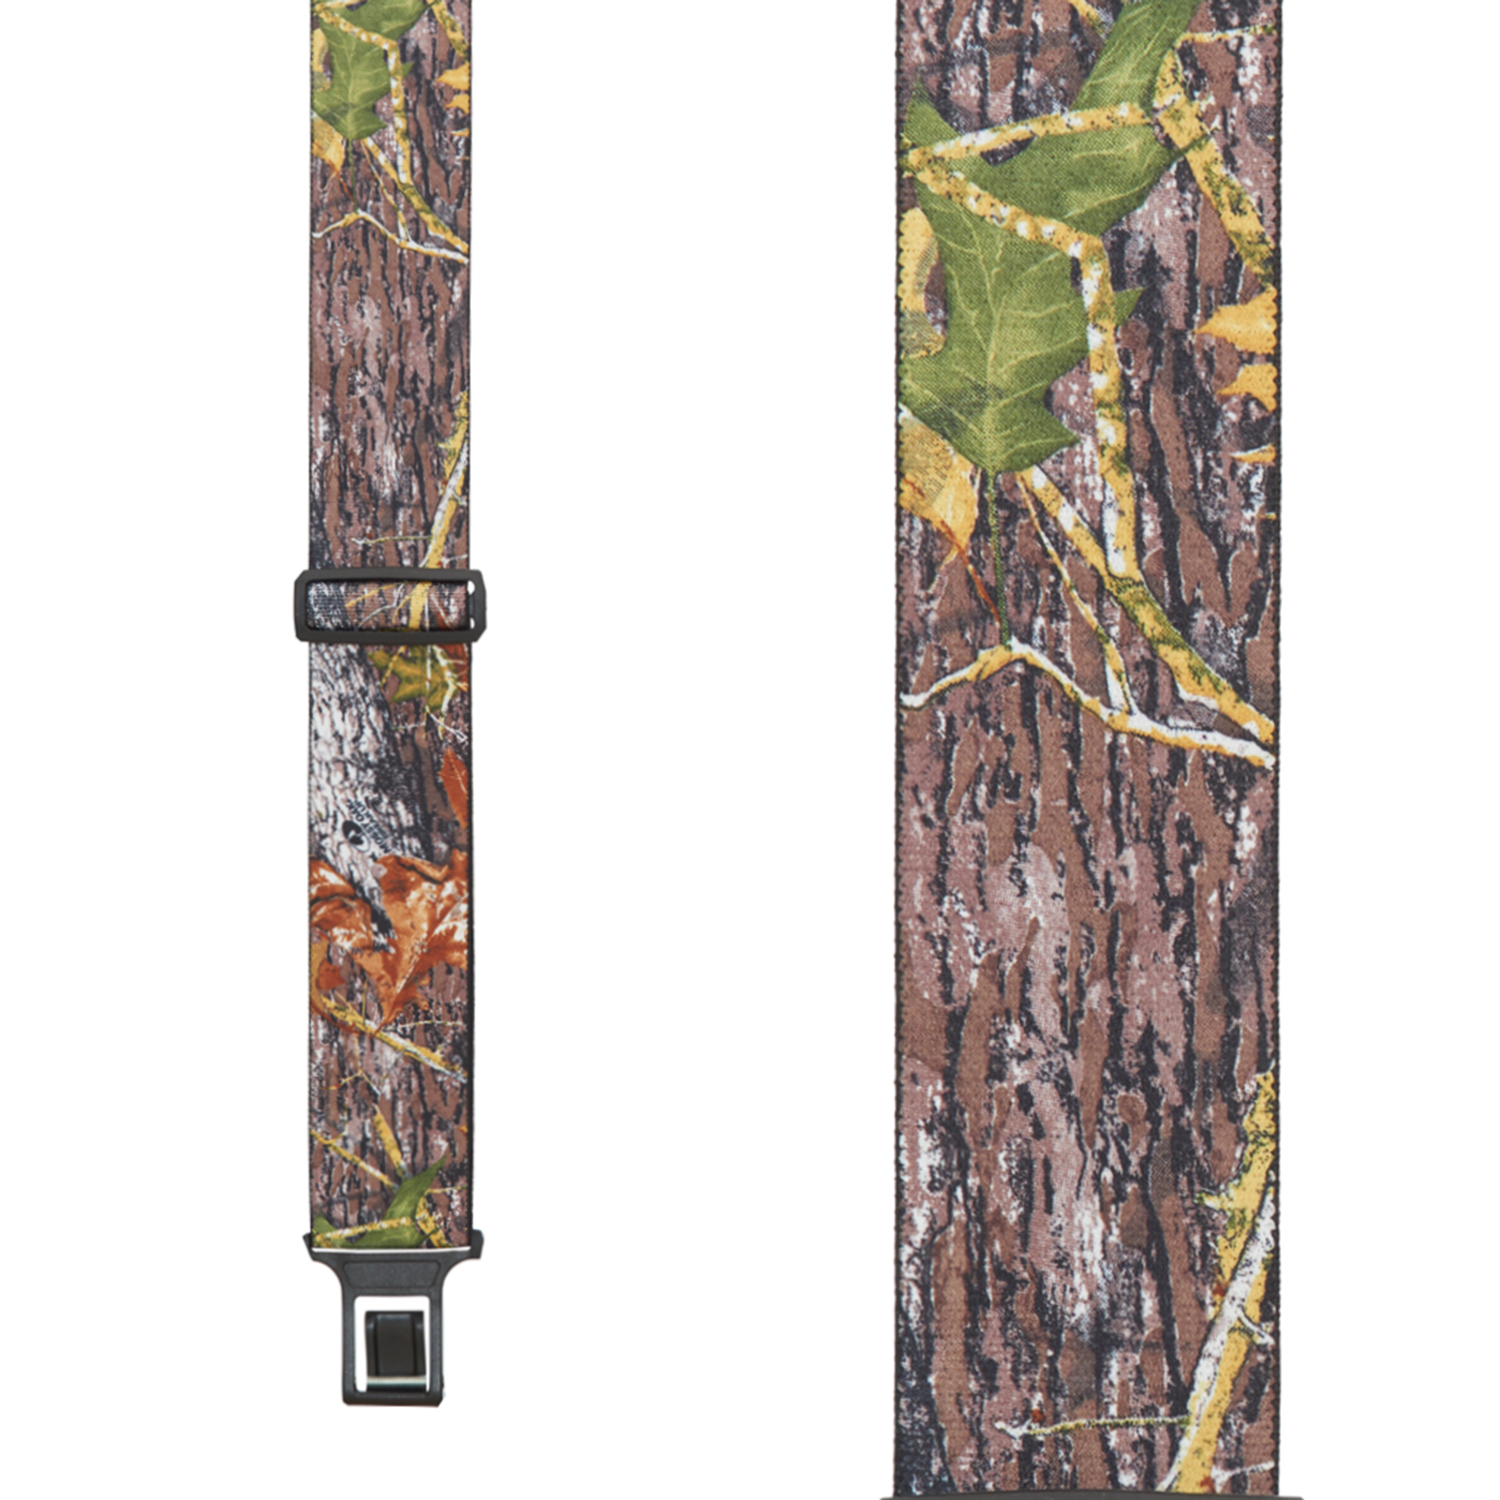 miniature 16 - Perry-Hook-On-Belt-Suspenders-The-Original-All-Colors-Regular-and-Big-amp-Tall